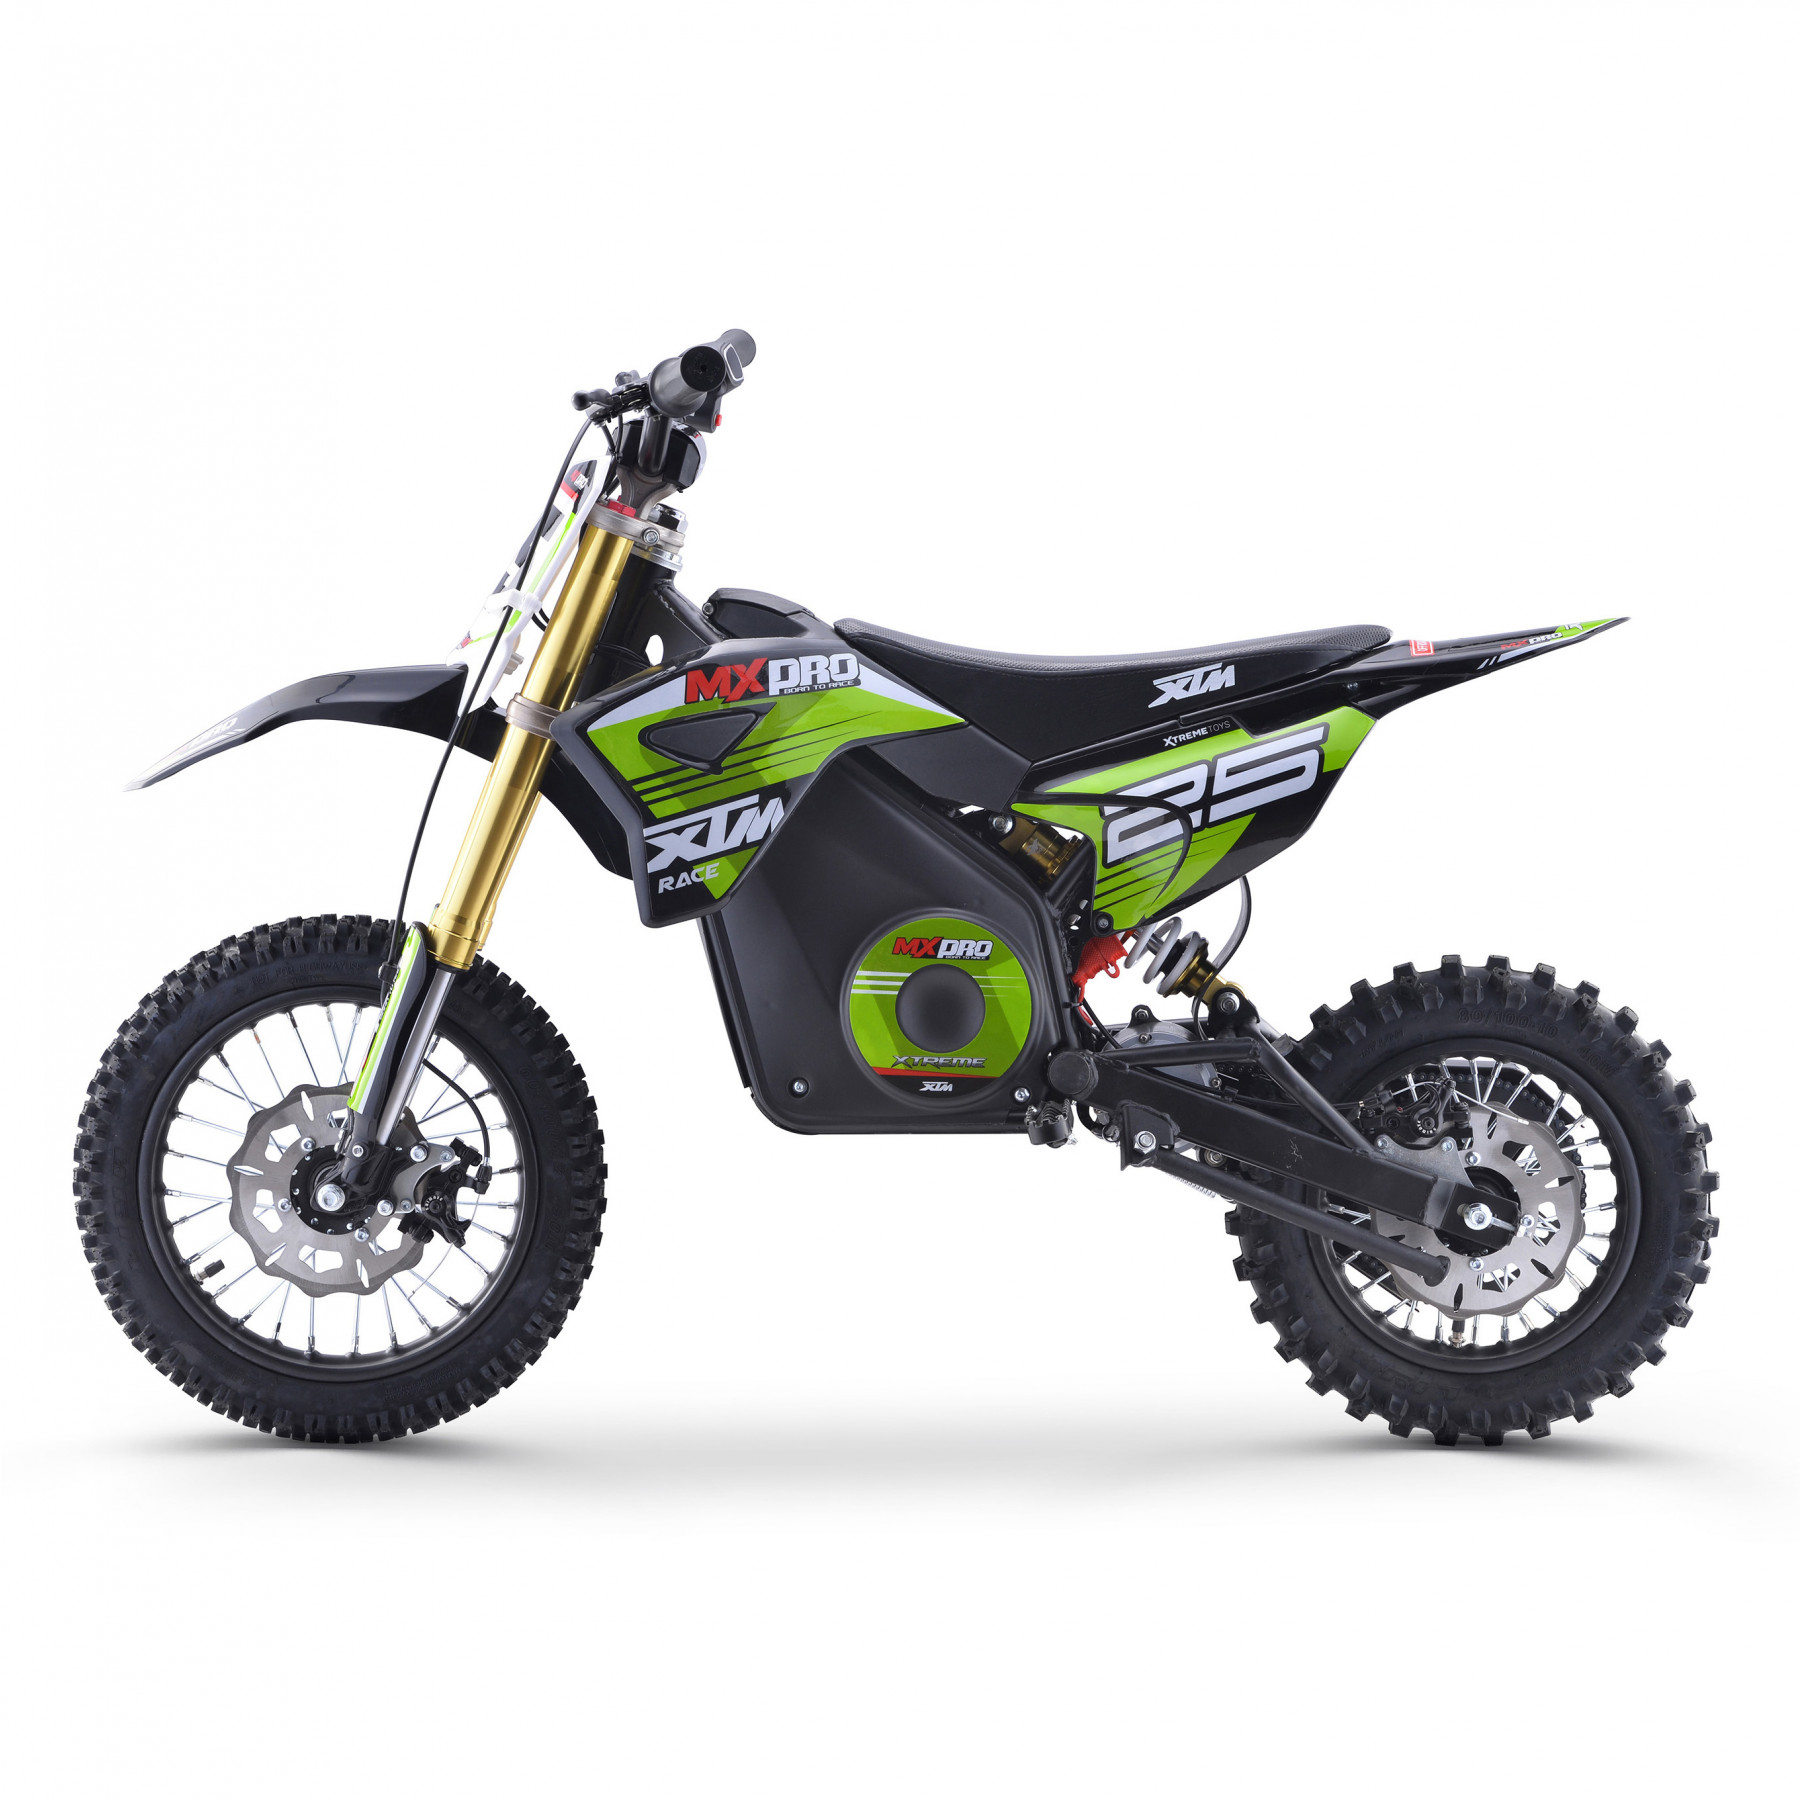 XTM MX-PRO 36V 1000W DIRT BIKE GREEN